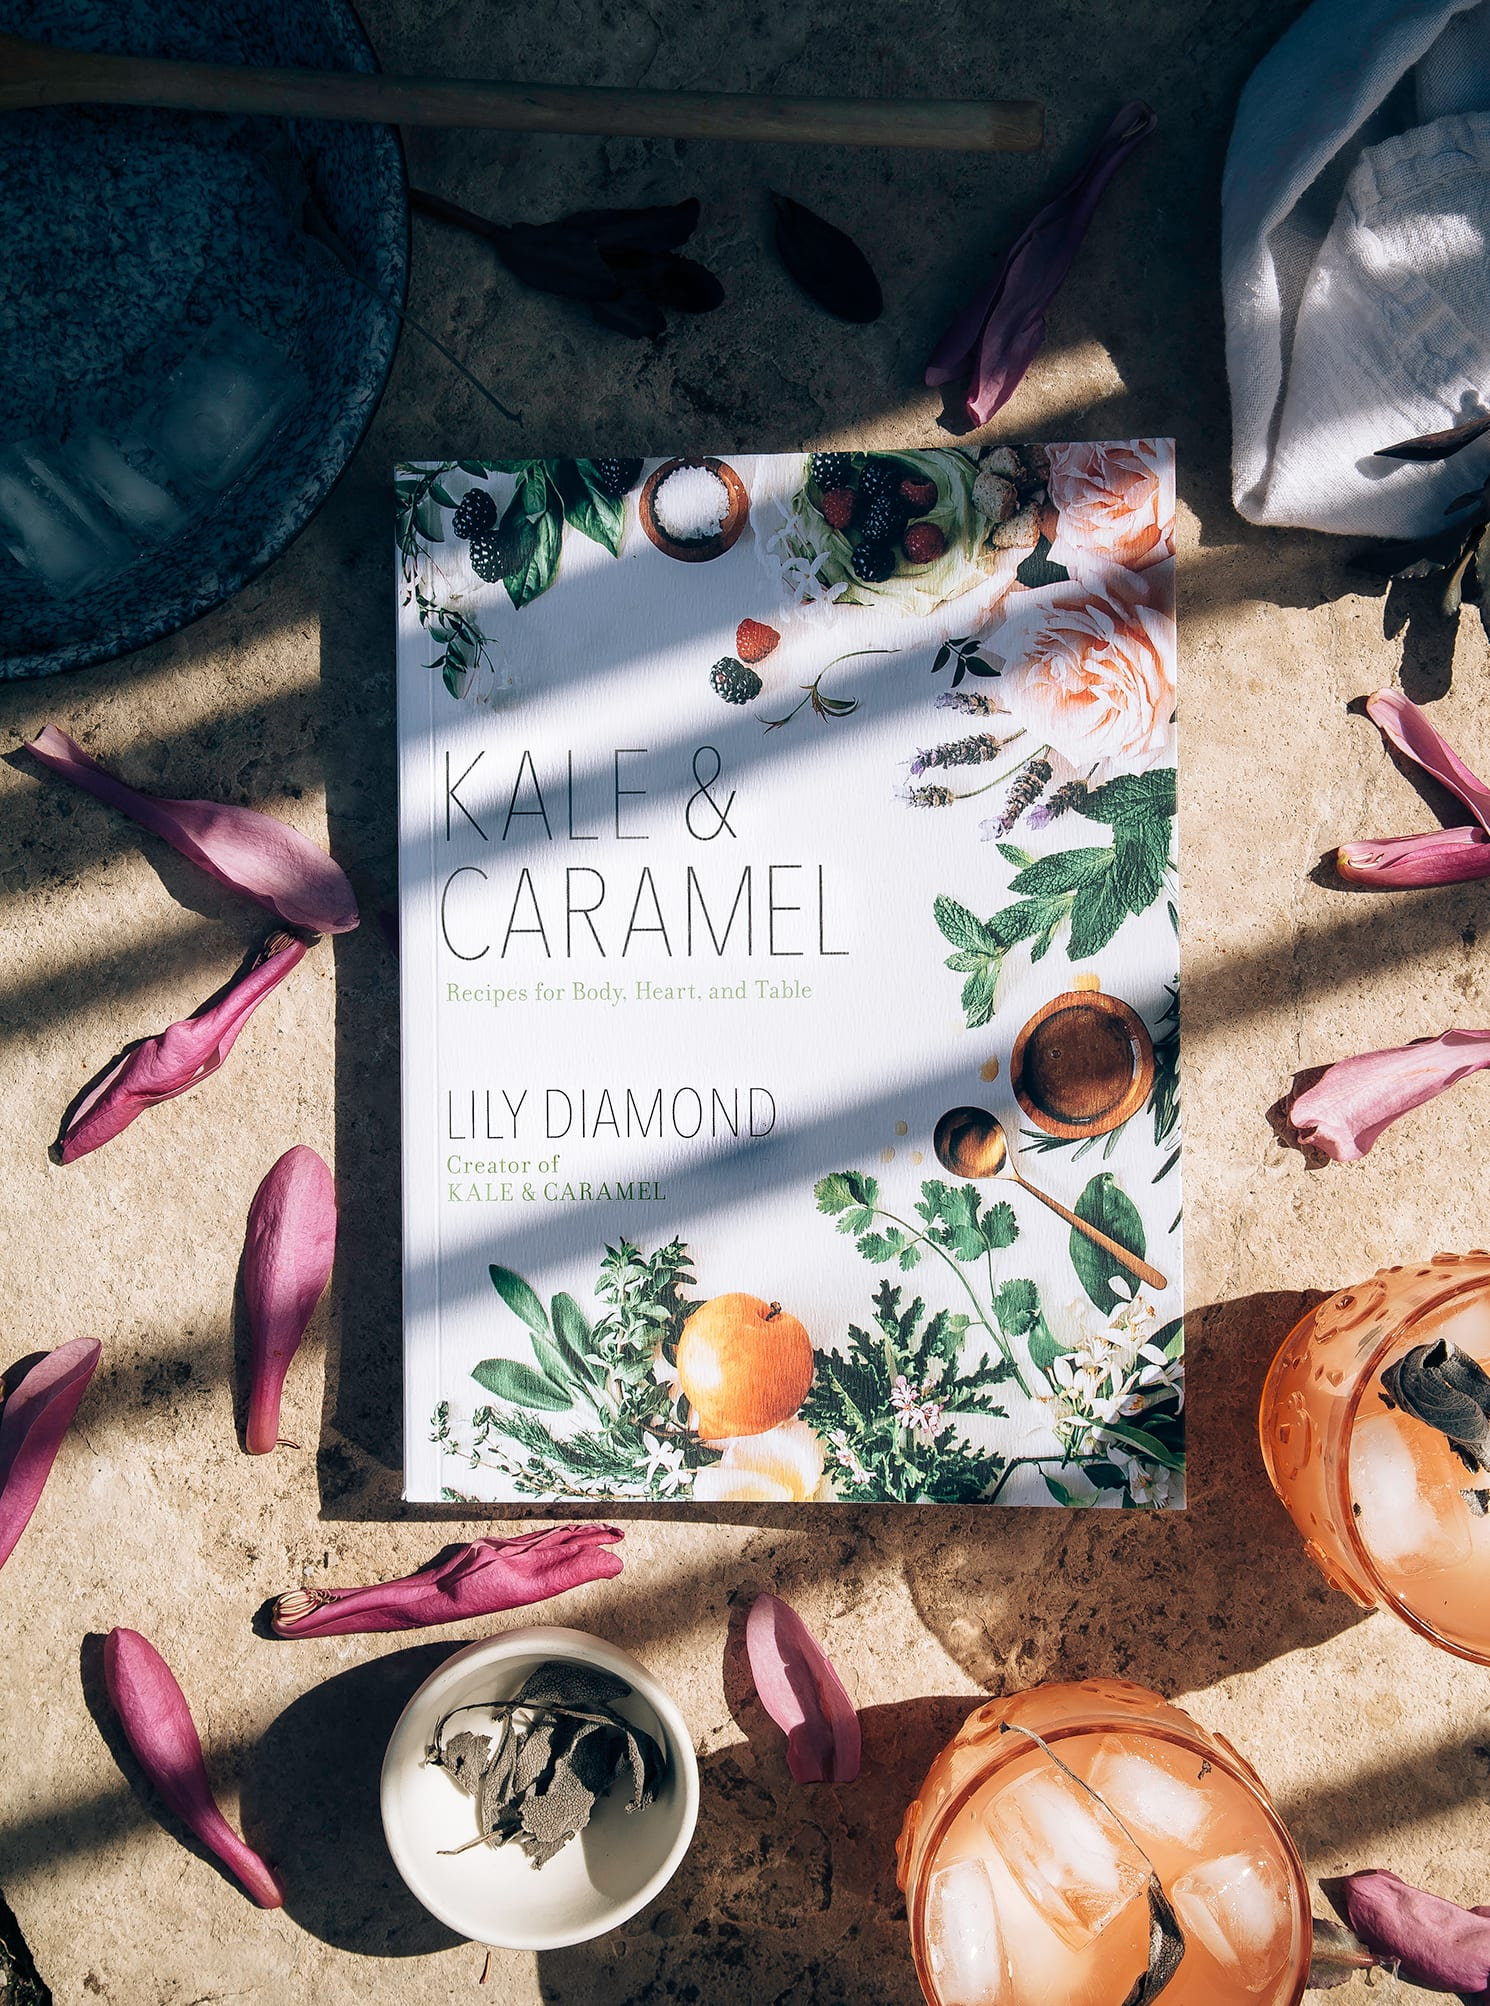 Kale & Caramel by Lily Diamond